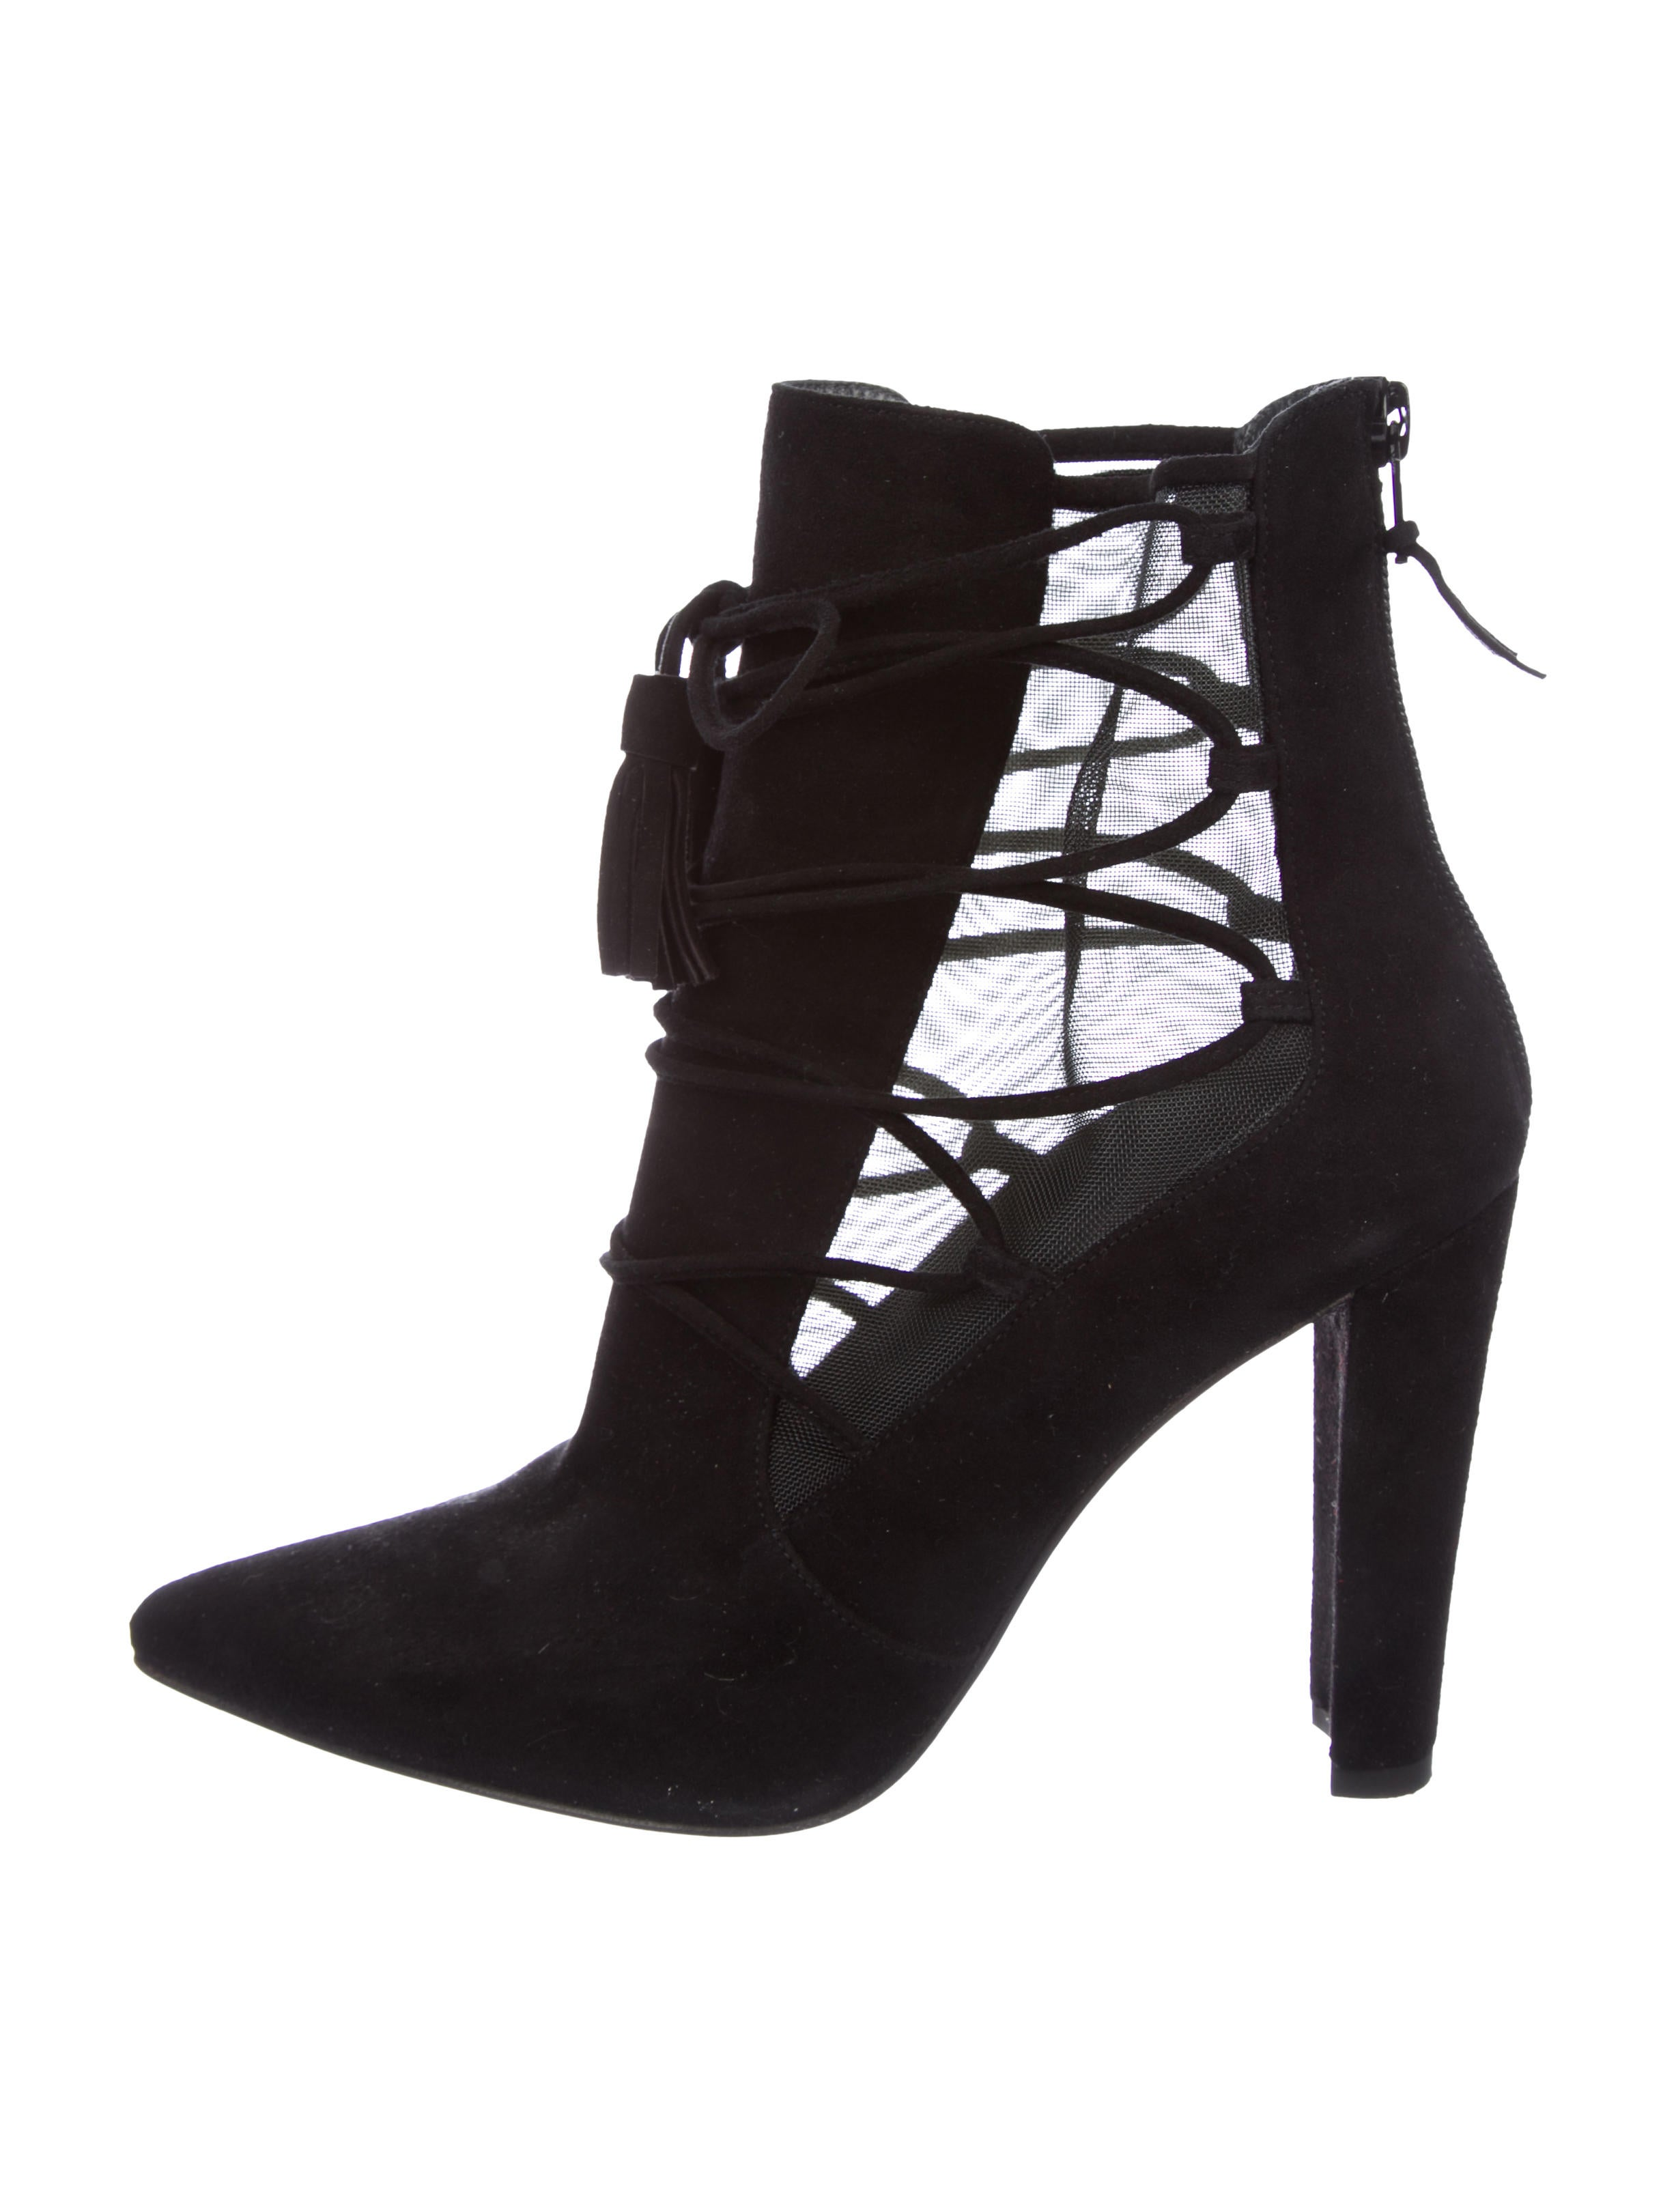 Stuart Weitzman Borderline Mesh-Accented Ankle Boots real cheap price xiPGXXIfdg